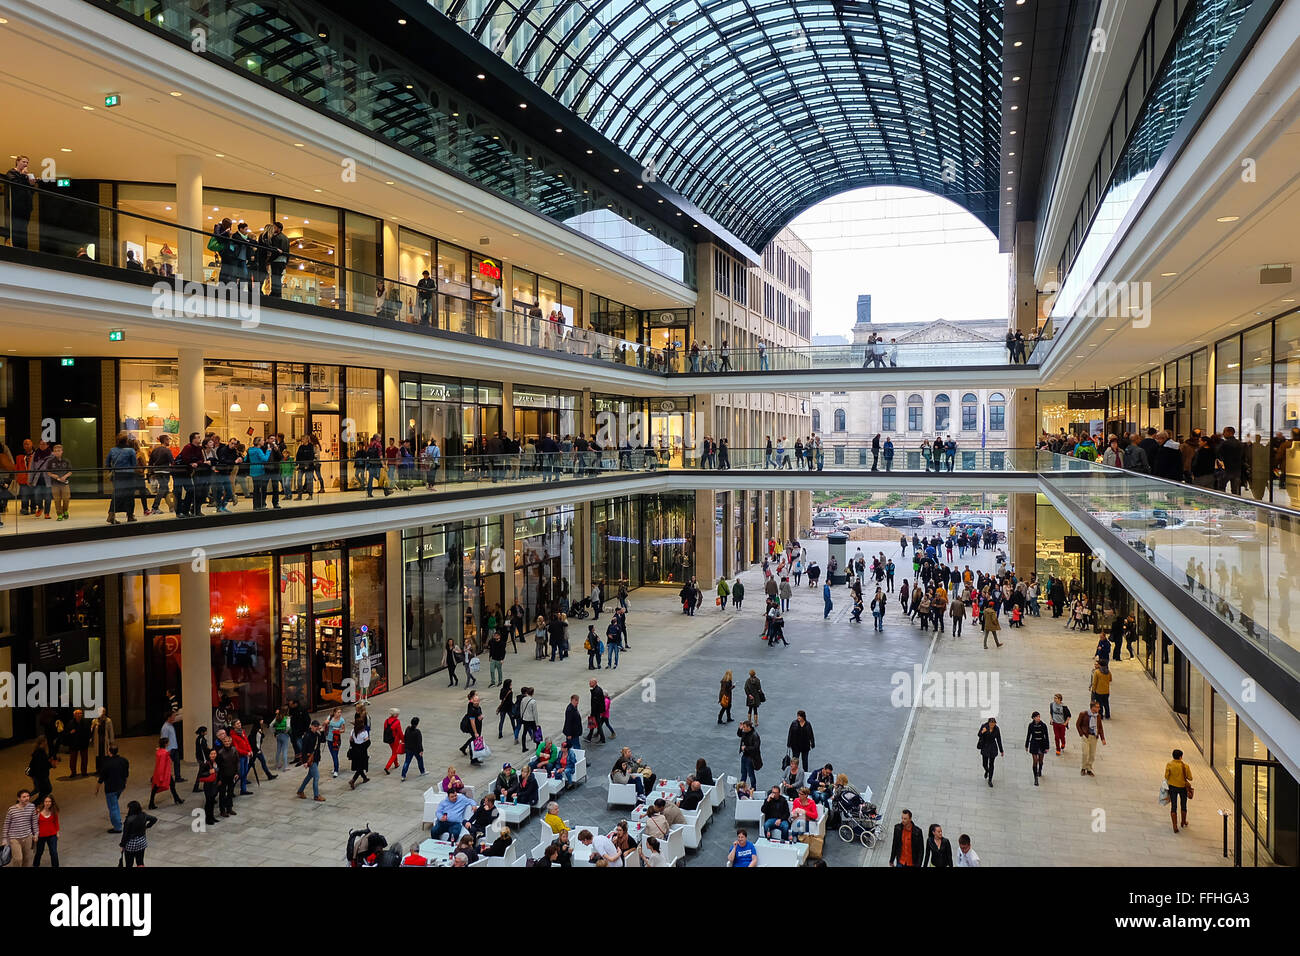 mall of berlin stockfotos mall of berlin bilder alamy. Black Bedroom Furniture Sets. Home Design Ideas